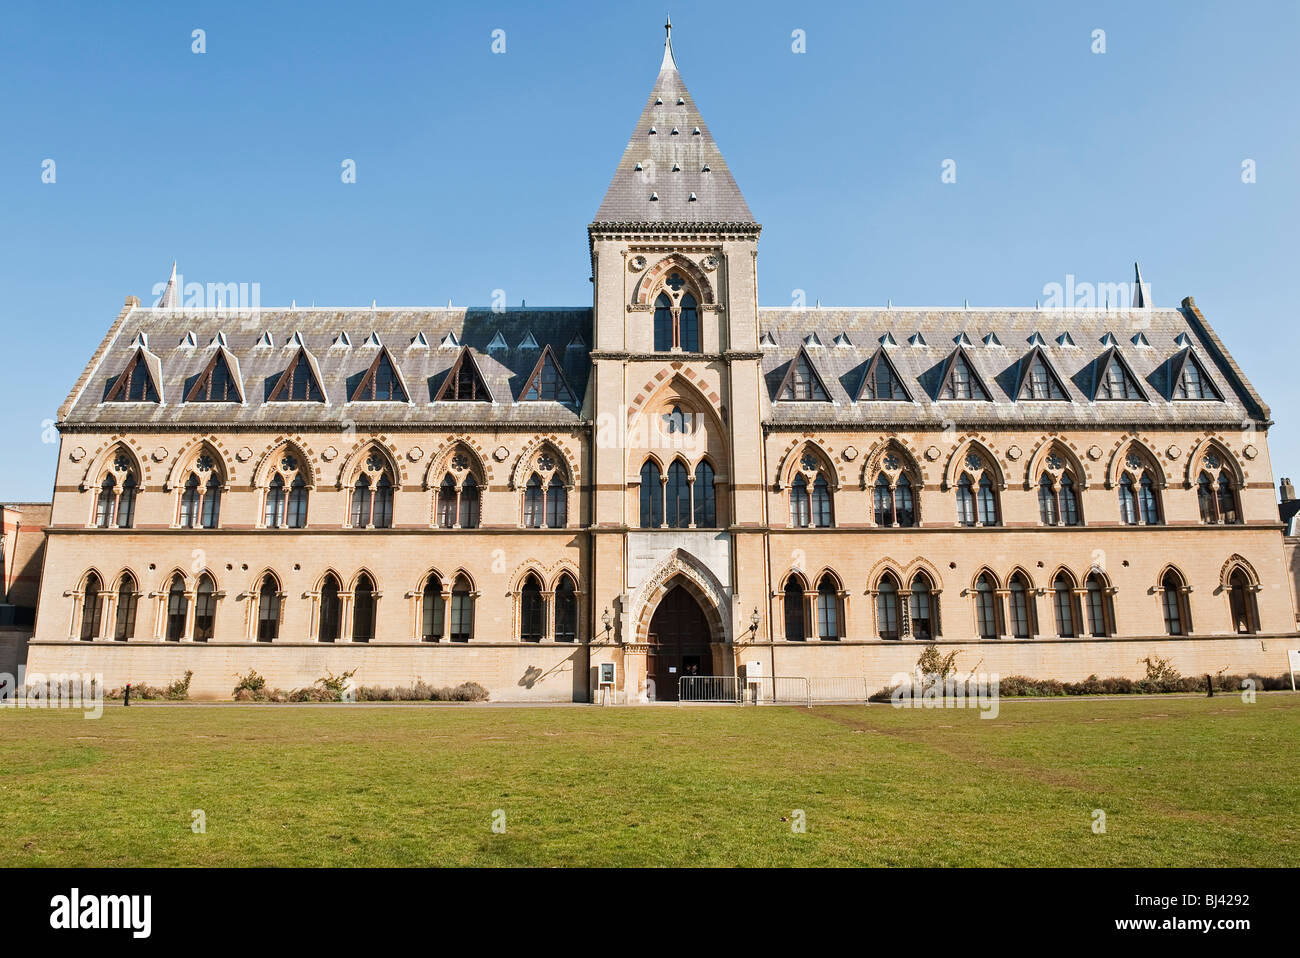 The Oxford University Museum of Natural History, containing the Pitt Rivers Museum - Stock Image